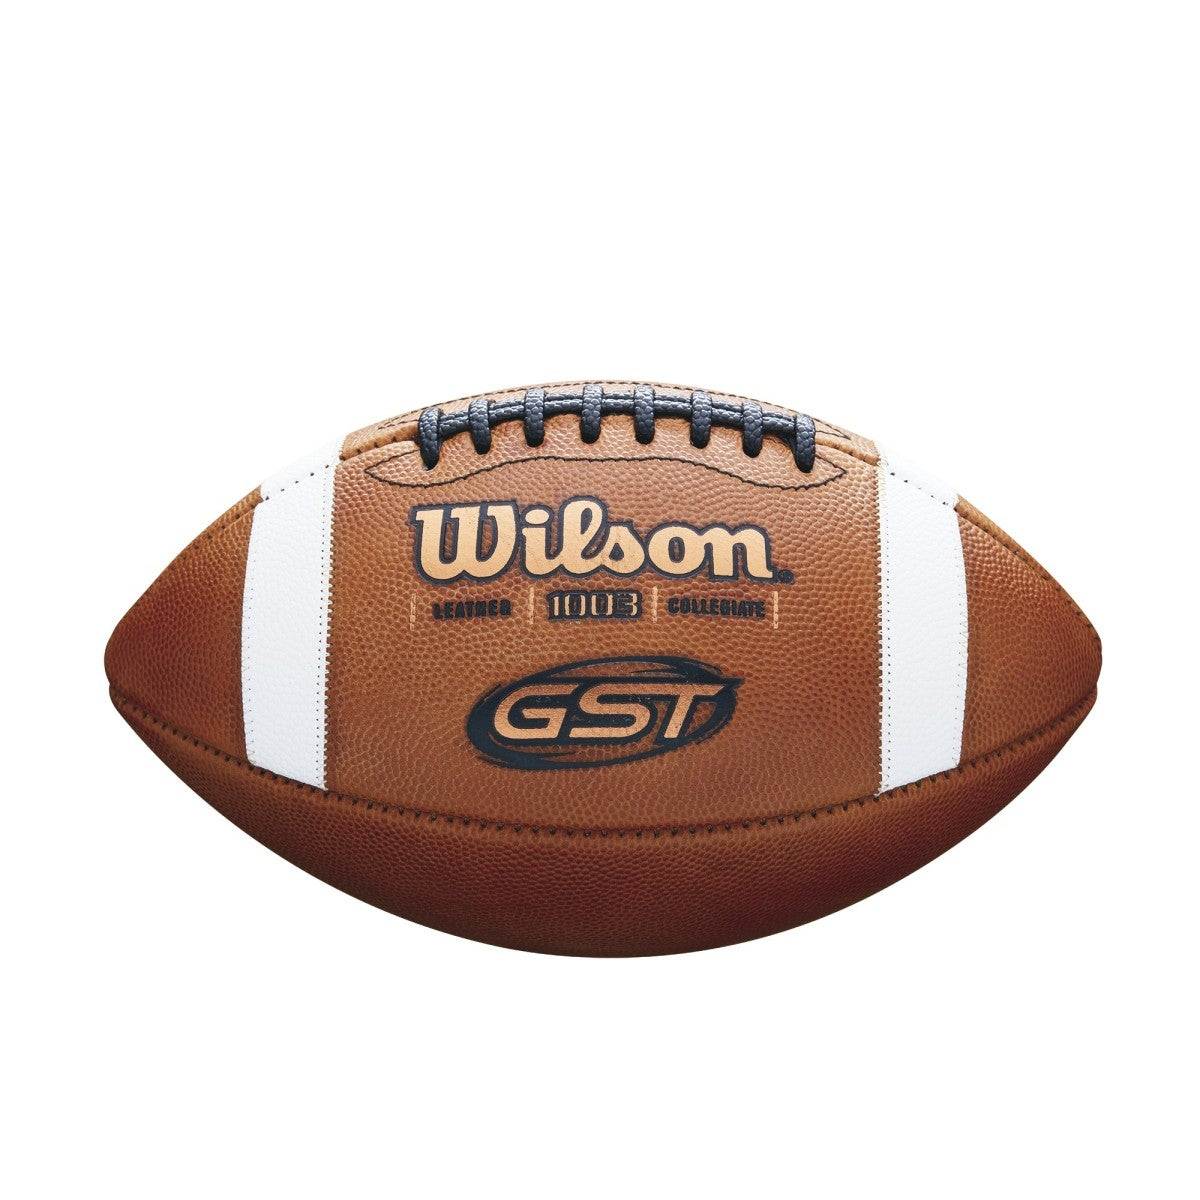 GST 1003 Collegiate Size Football